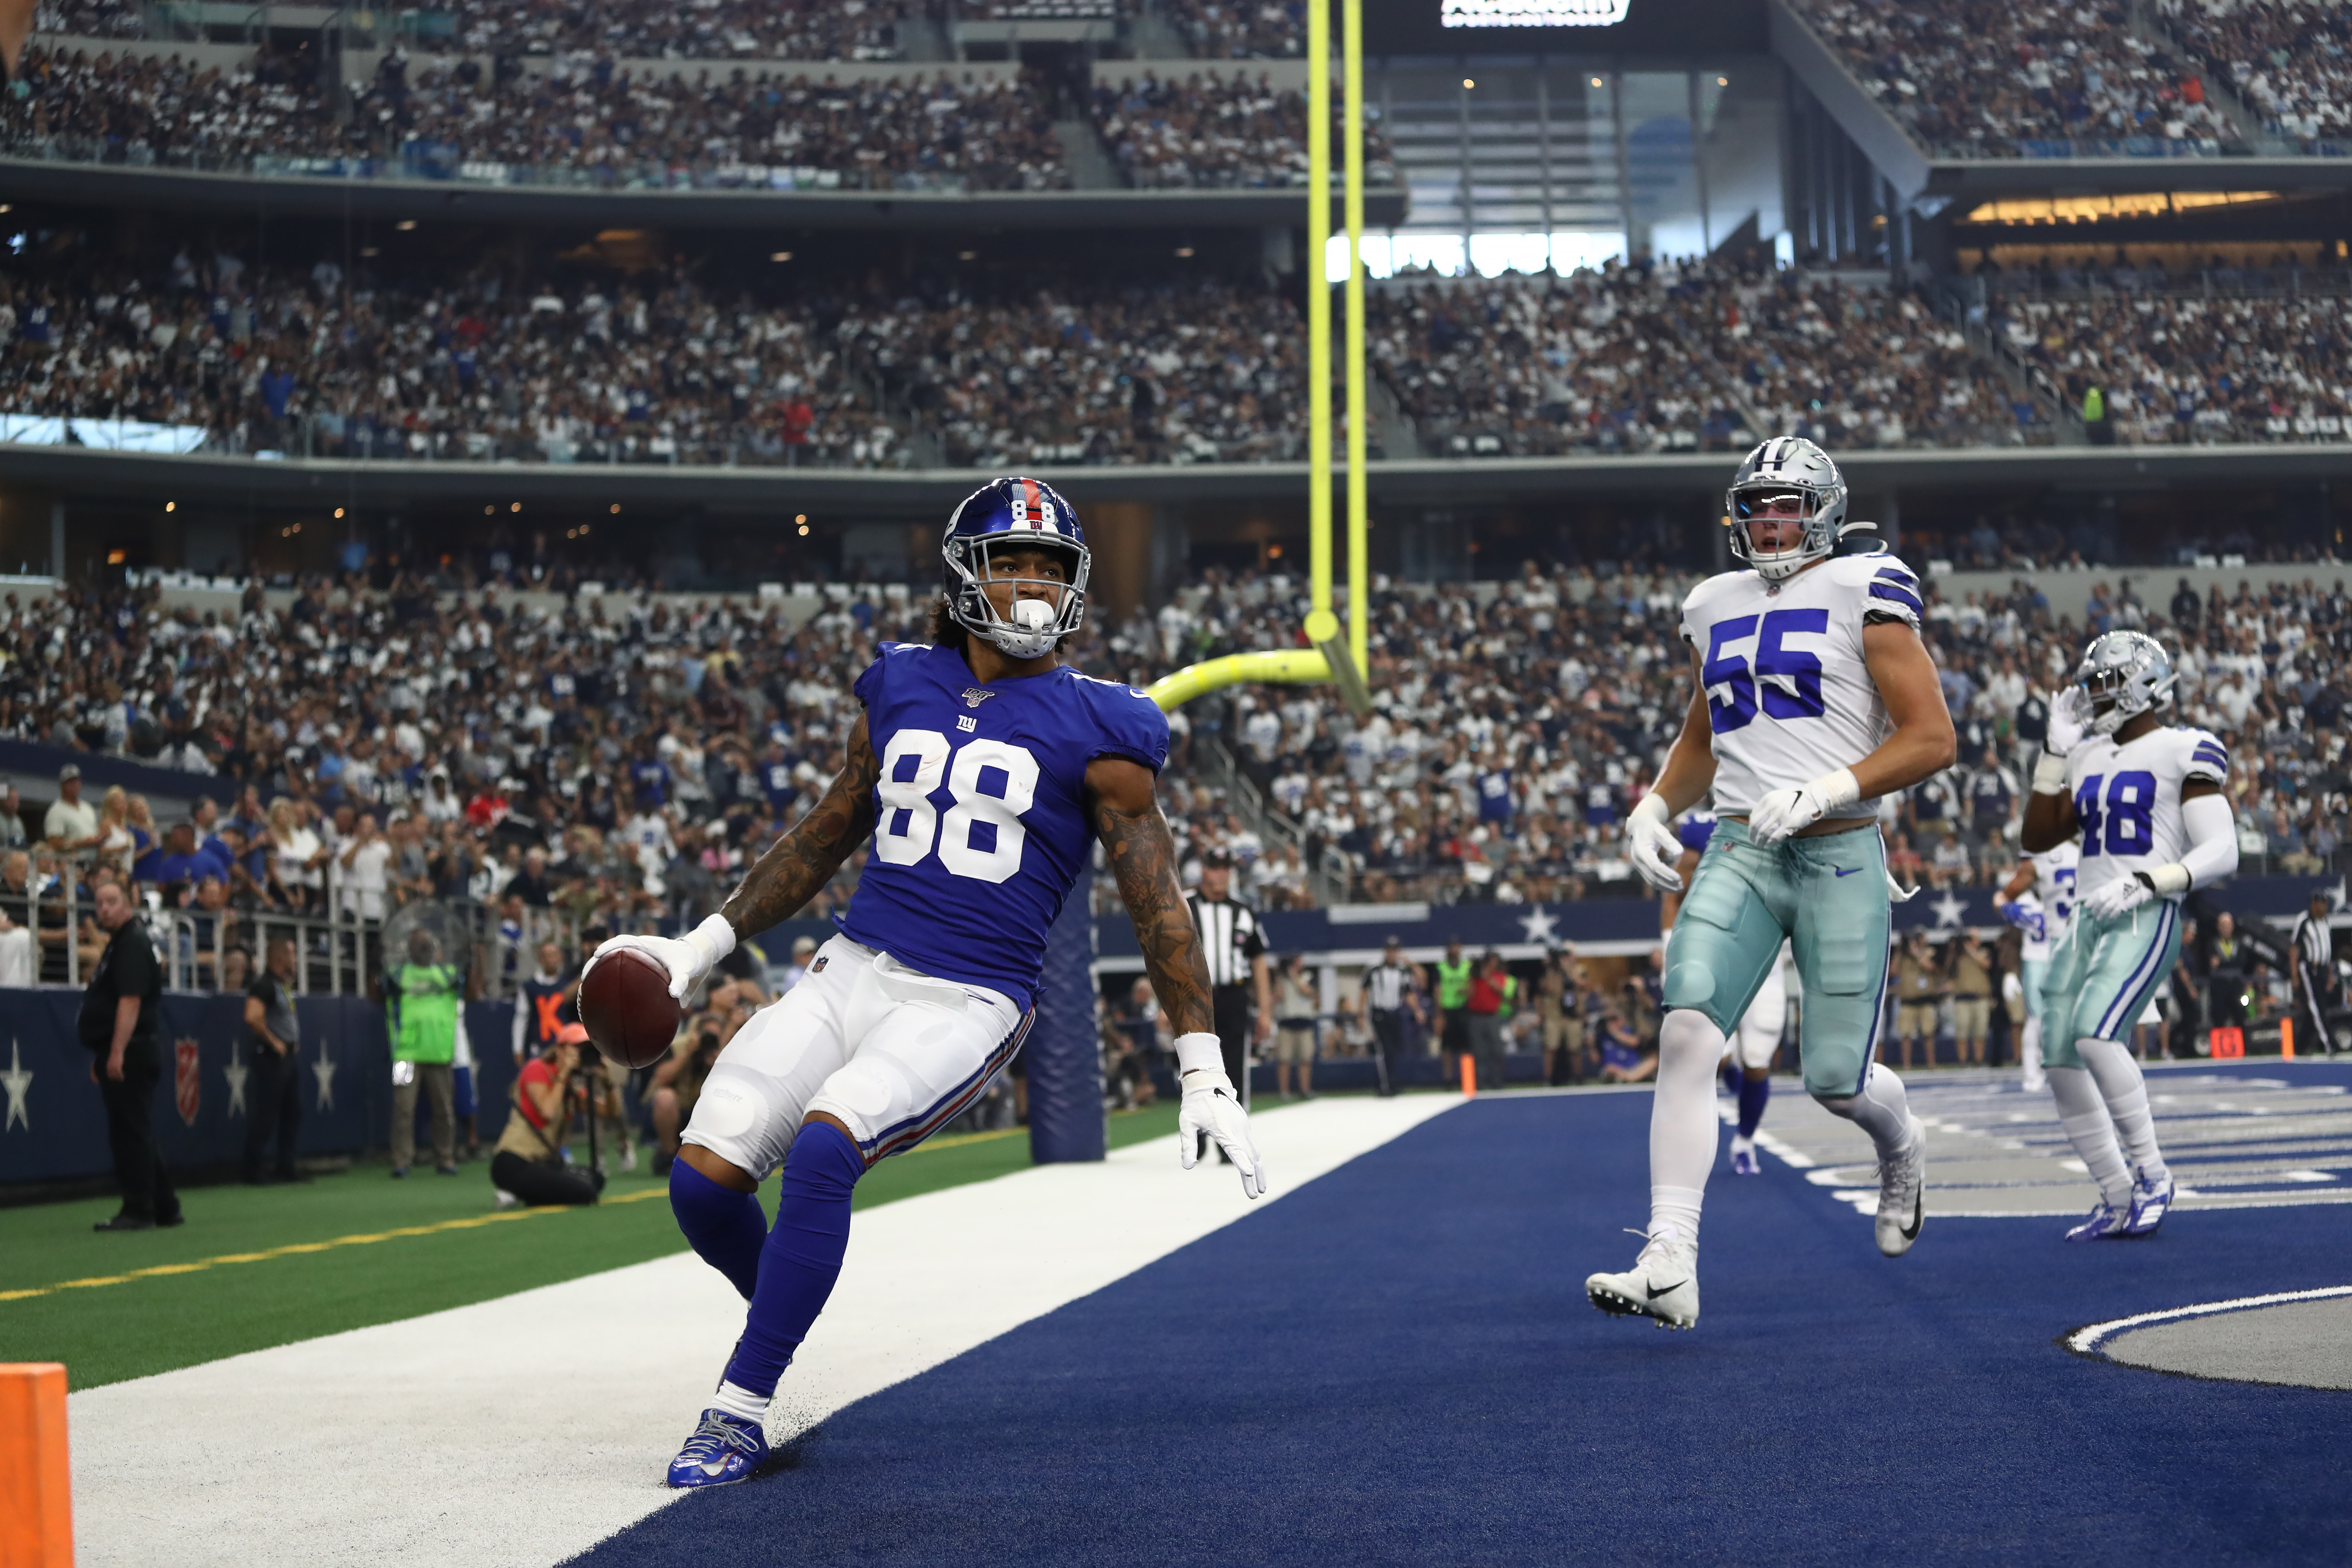 Tight end Evan Engram of the New York Giants scores a touchdown against the Dallas Cowboys at AT&T Stadium on September 08, 2019 in Arlington, Texas.